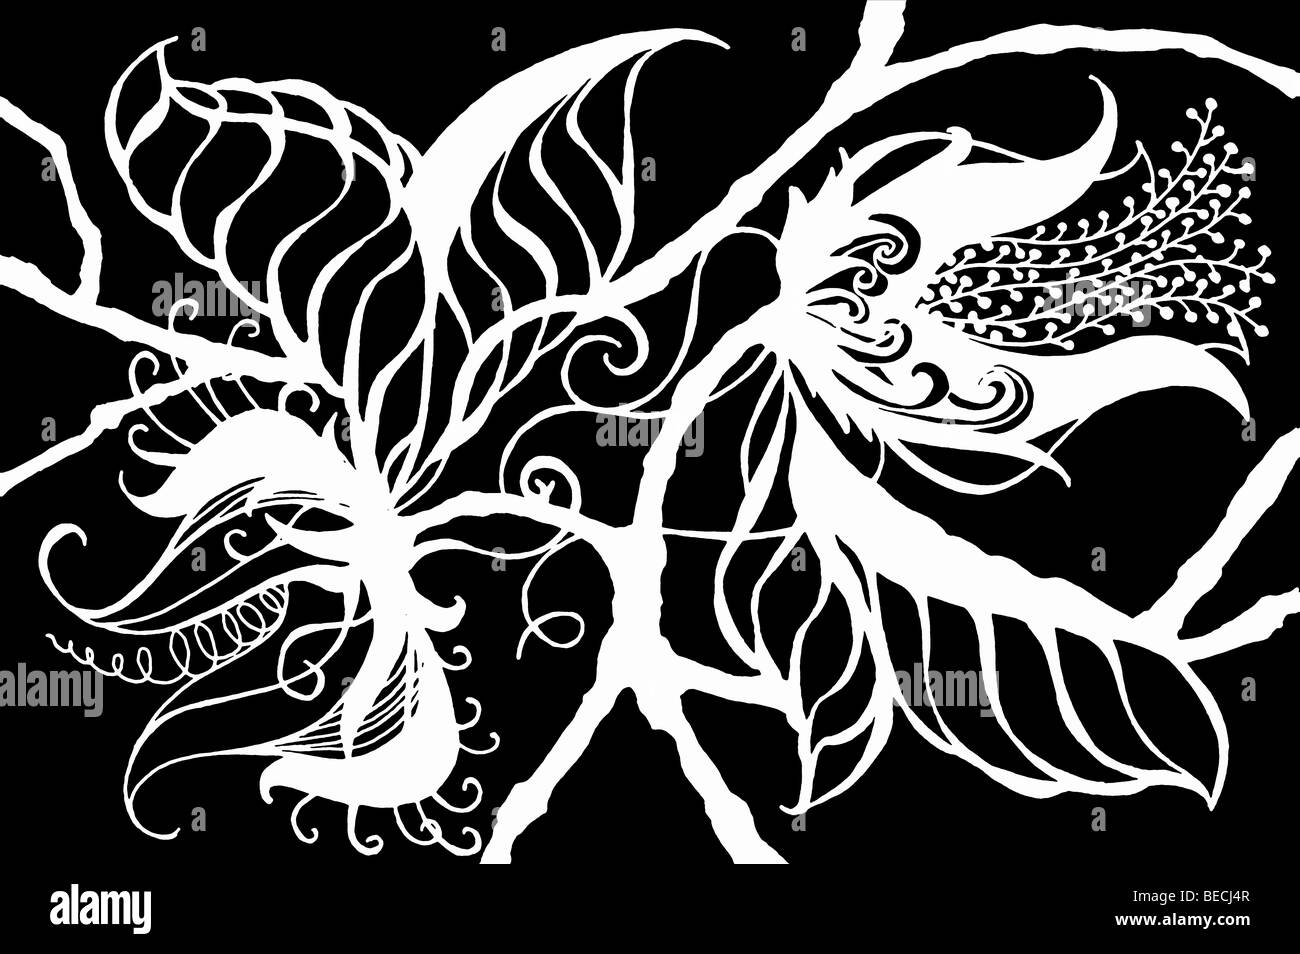 Repeatable white on black drawing of exotic and fanciful botanical blossoms, leaves and stems in a silhouetted design Stock Photo